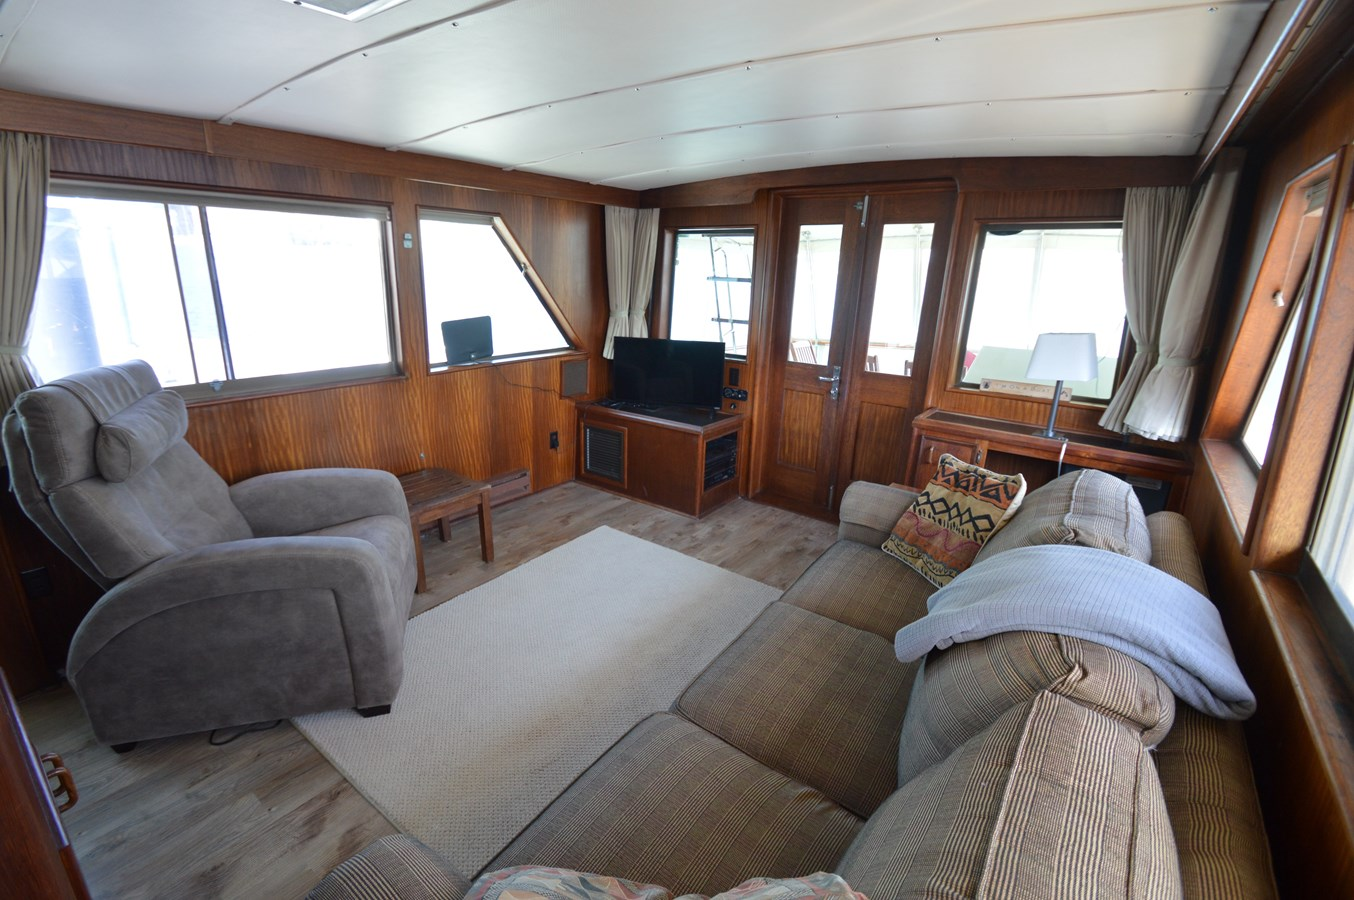 19 - 53 HATTERAS For Sale